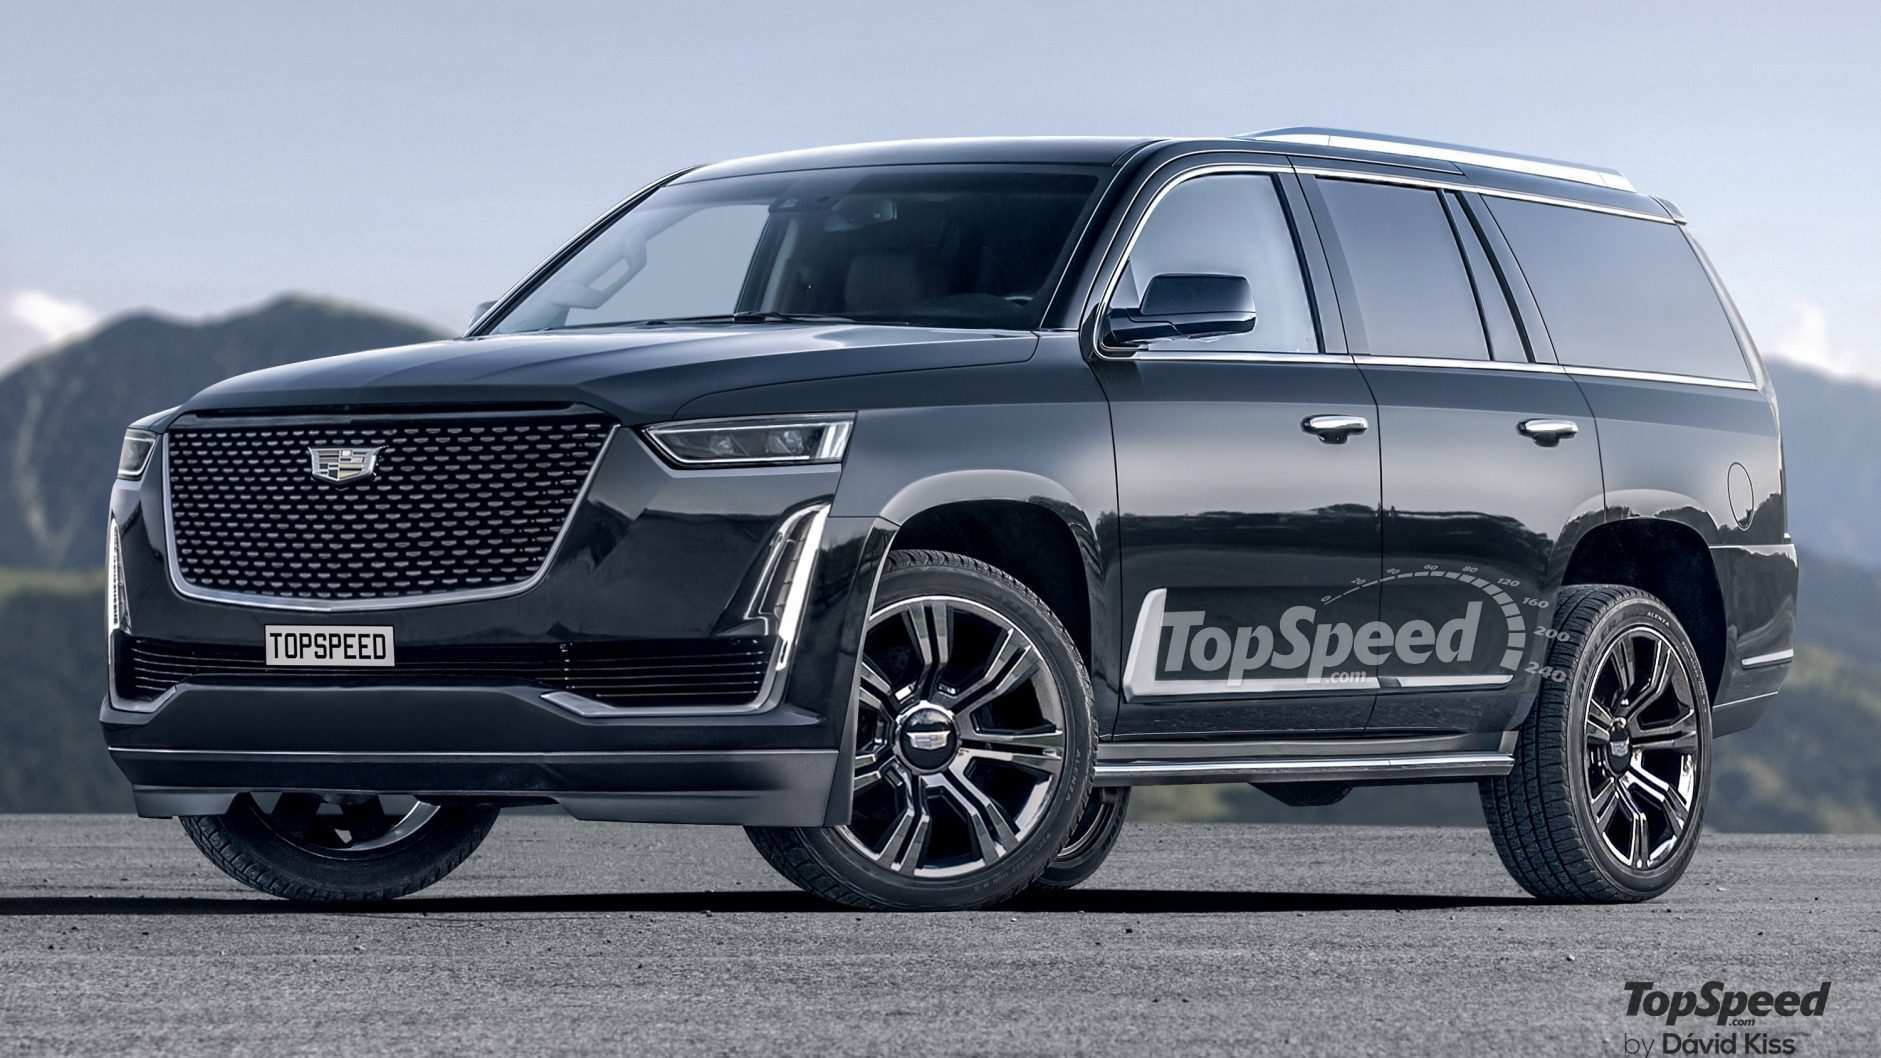 51 A GMC Yukon 2020 Price Design And Review